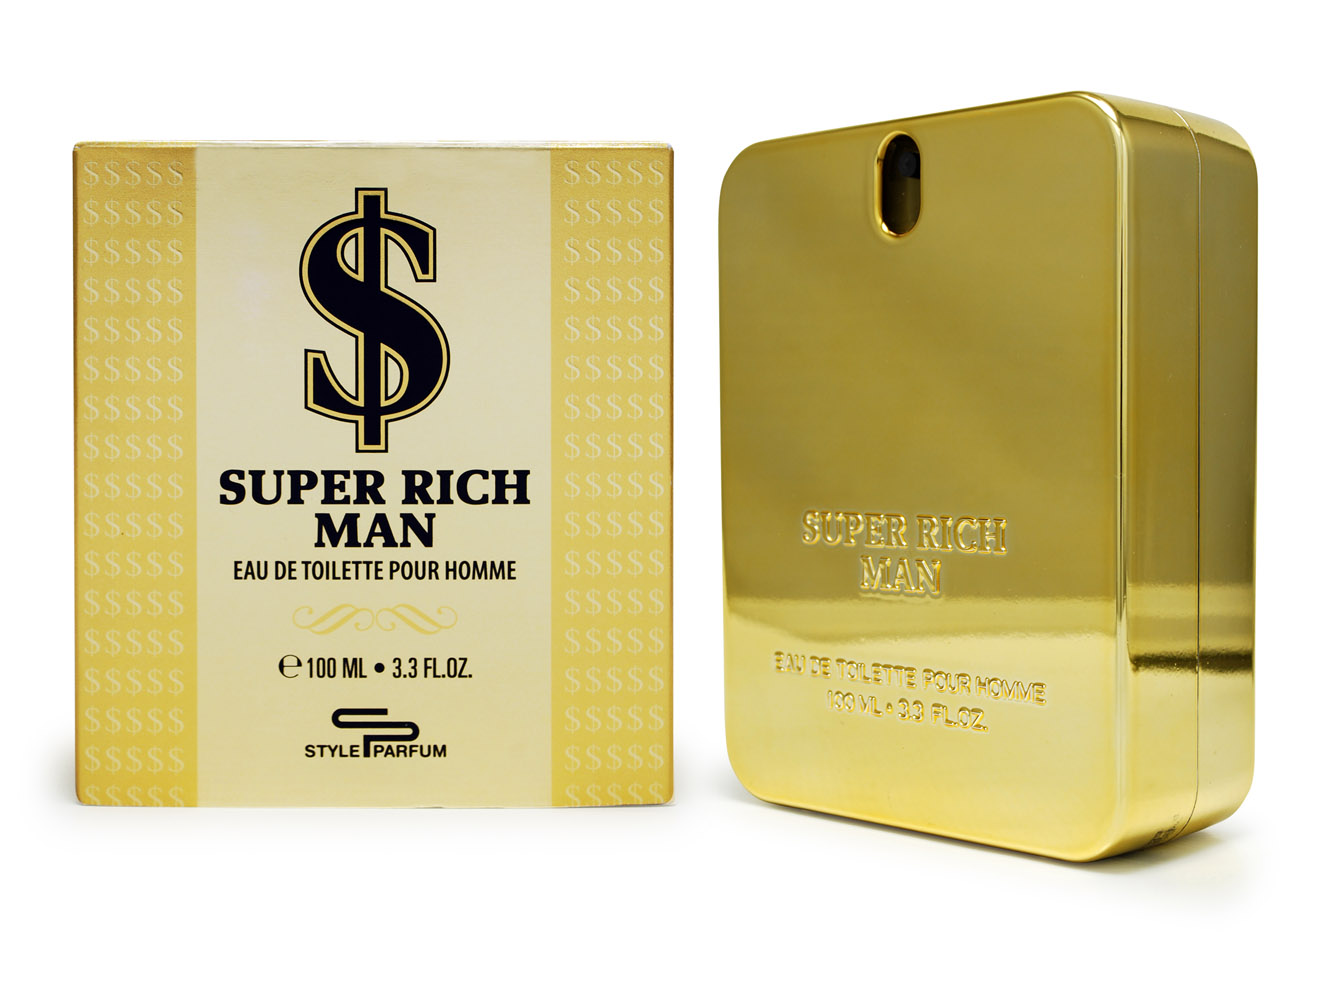 SUPER RICH MAN - PACO RABANNE ONE MILLION